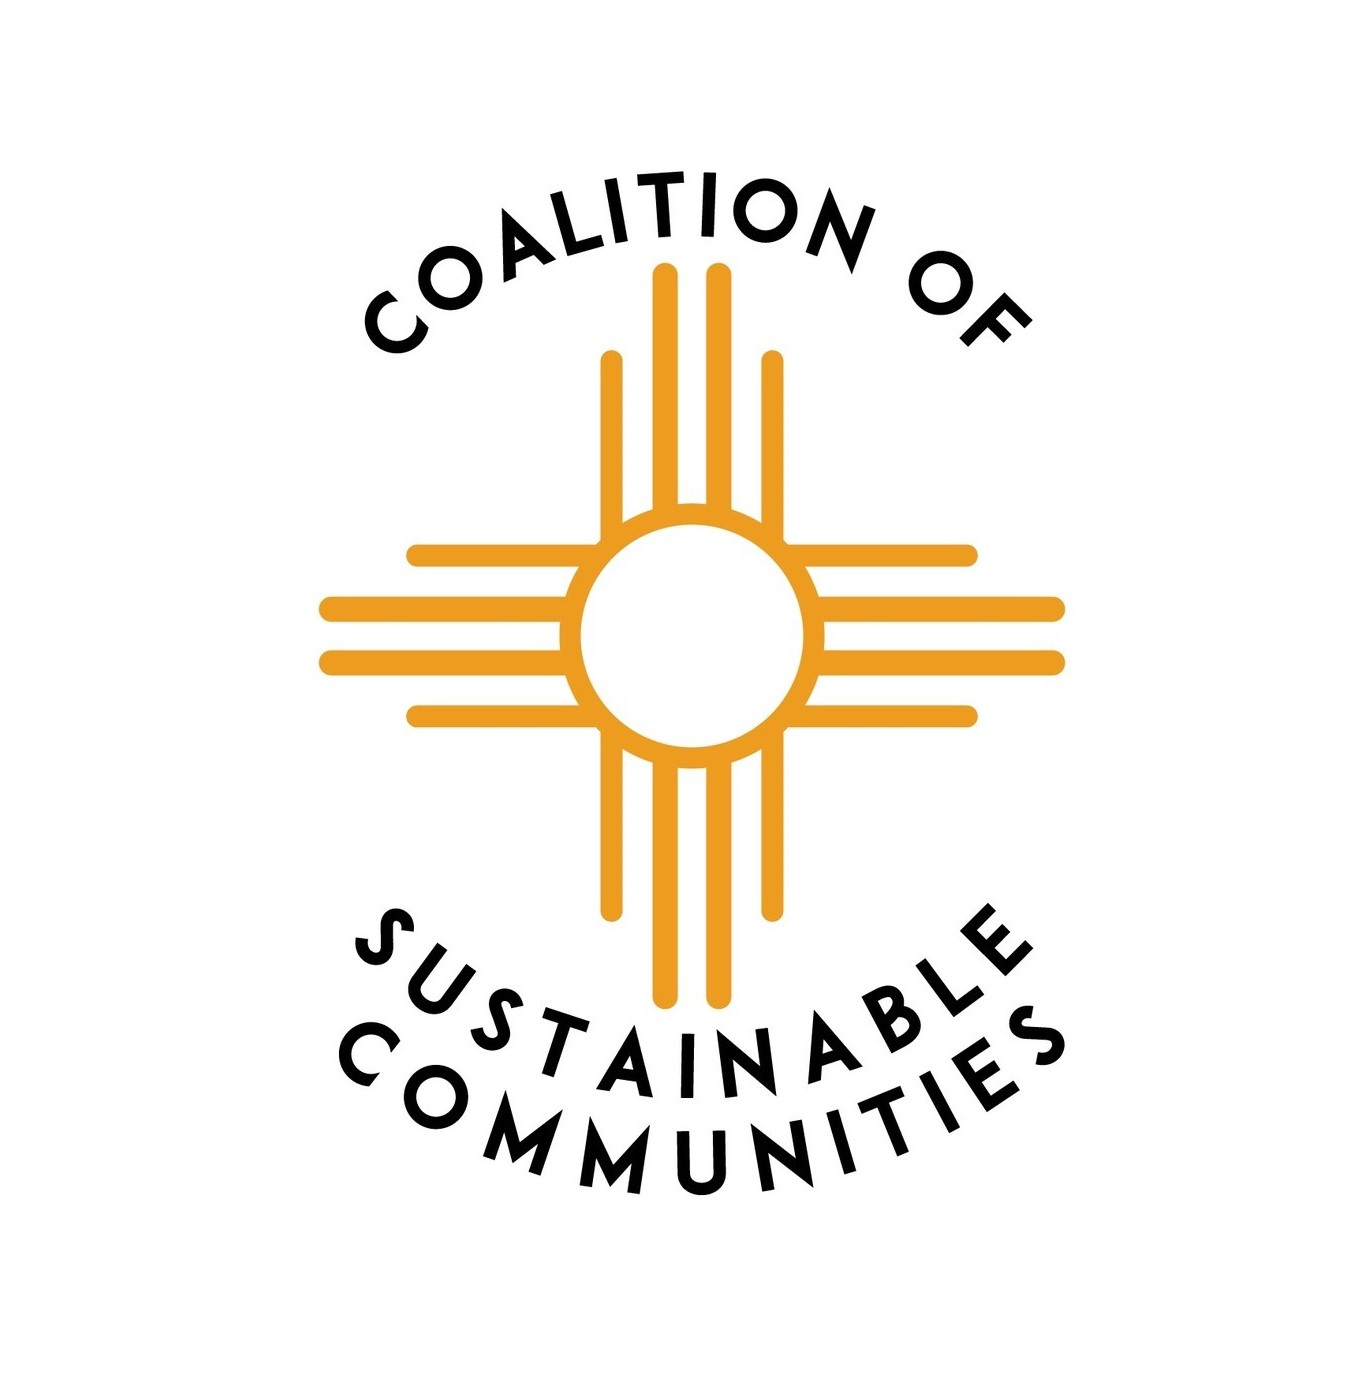 Coalition of Sustainable Communities NM (CSCNM)​